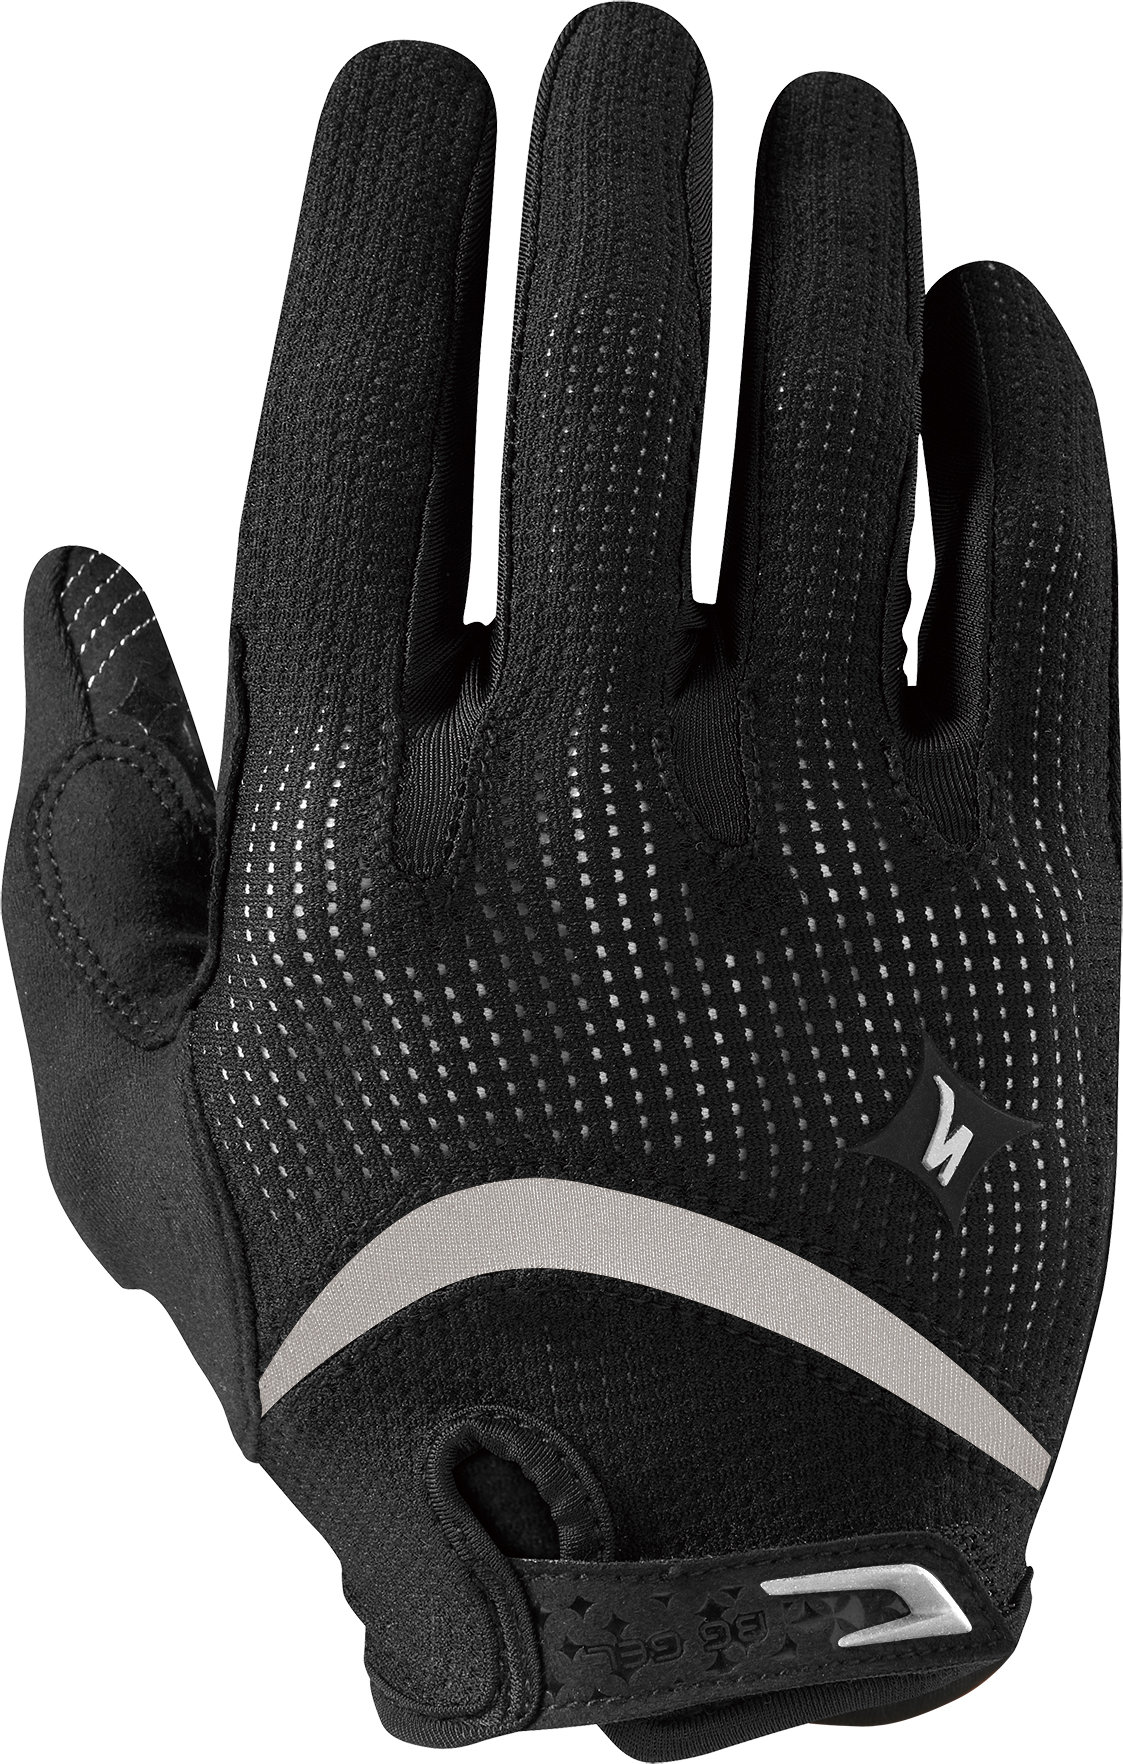 SPECIALIZED BG GEL GLOVE LF WMN BLK M - Alpha Bikes